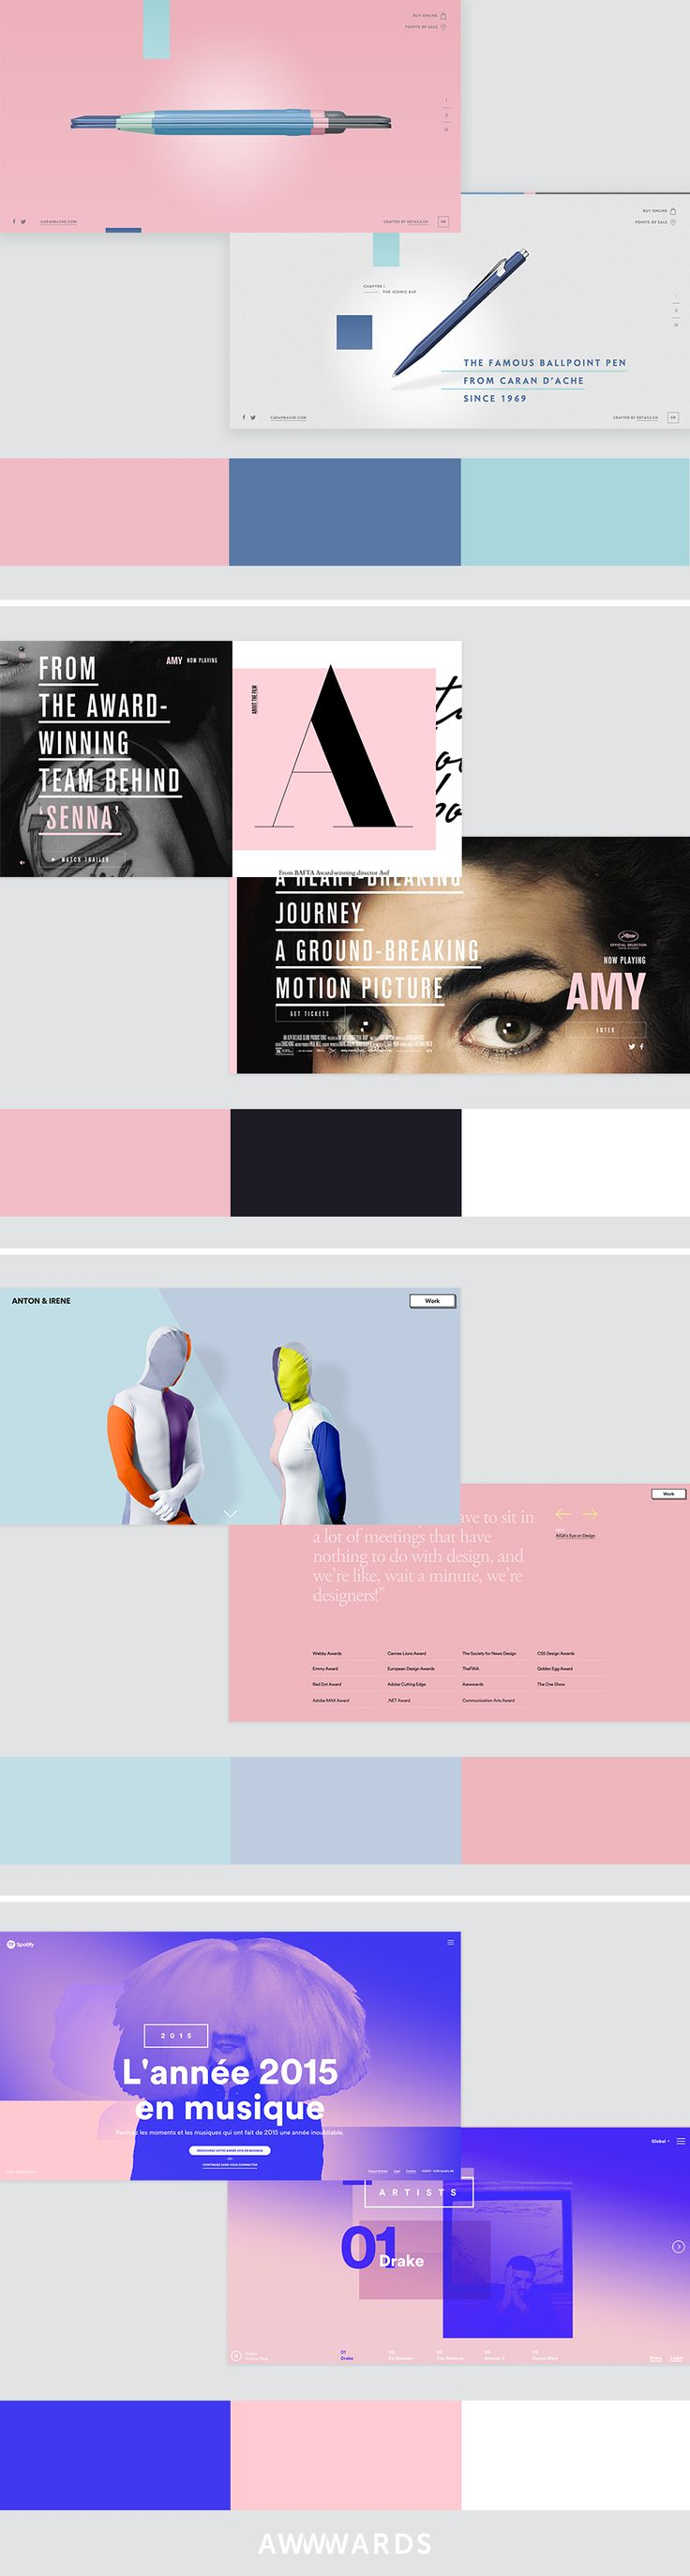 How Pantone Colors of the Year Rose Quartz and Serenity Join the Story of Web Design